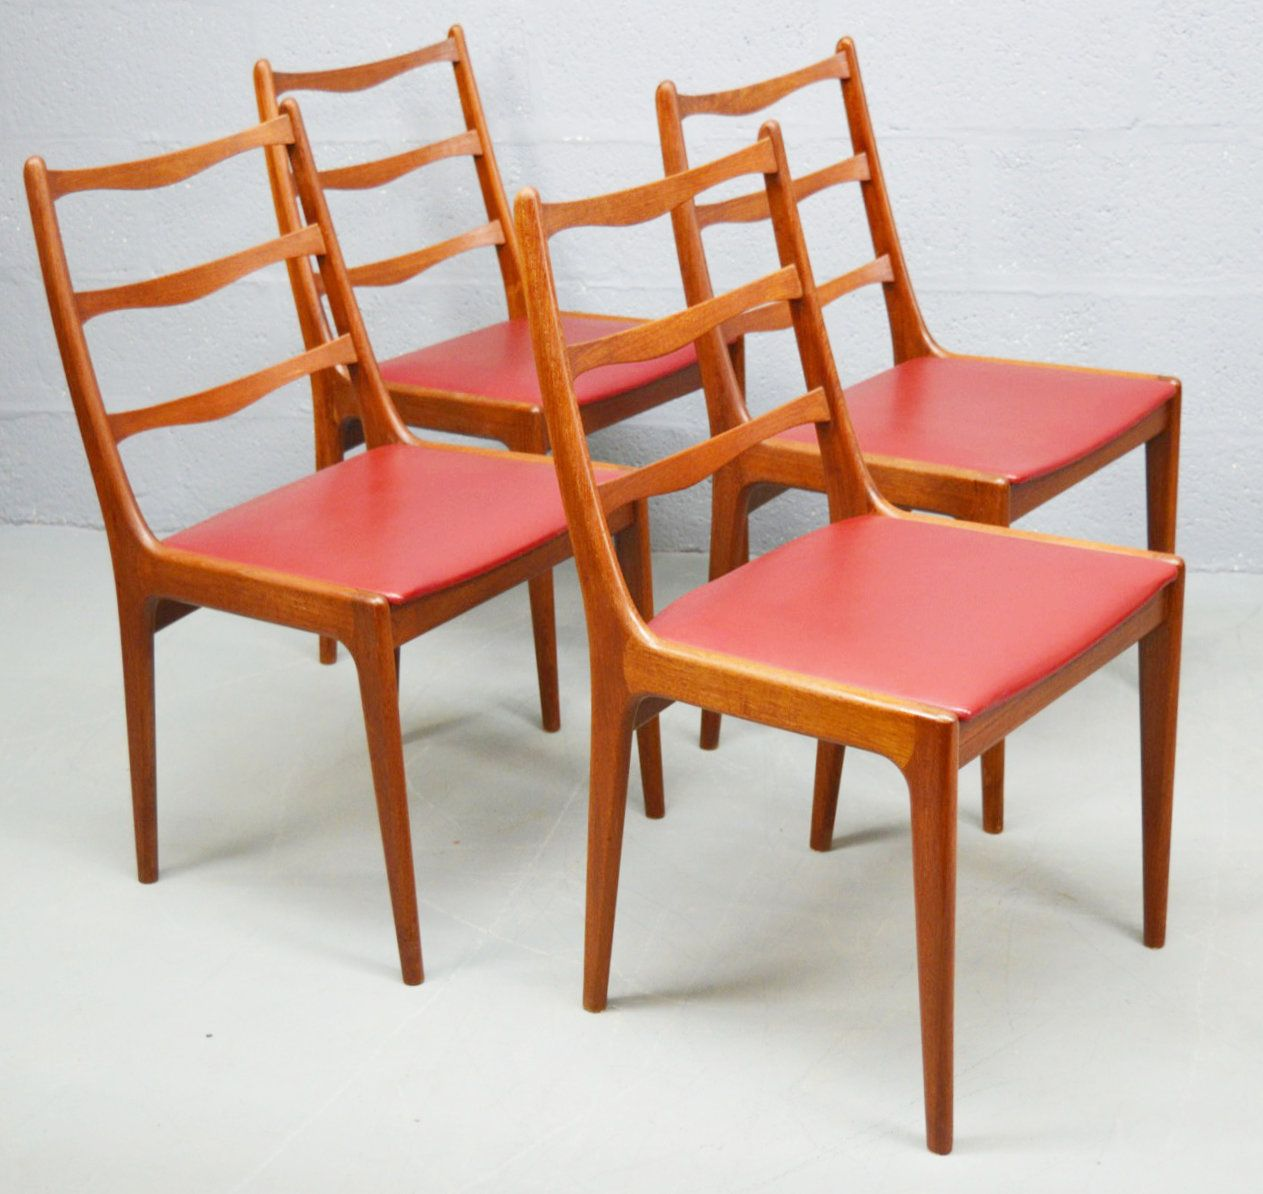 Danish Teak Dining Chairs Mid Century Teak Danish Dining Chairs By Kai Kristiansen